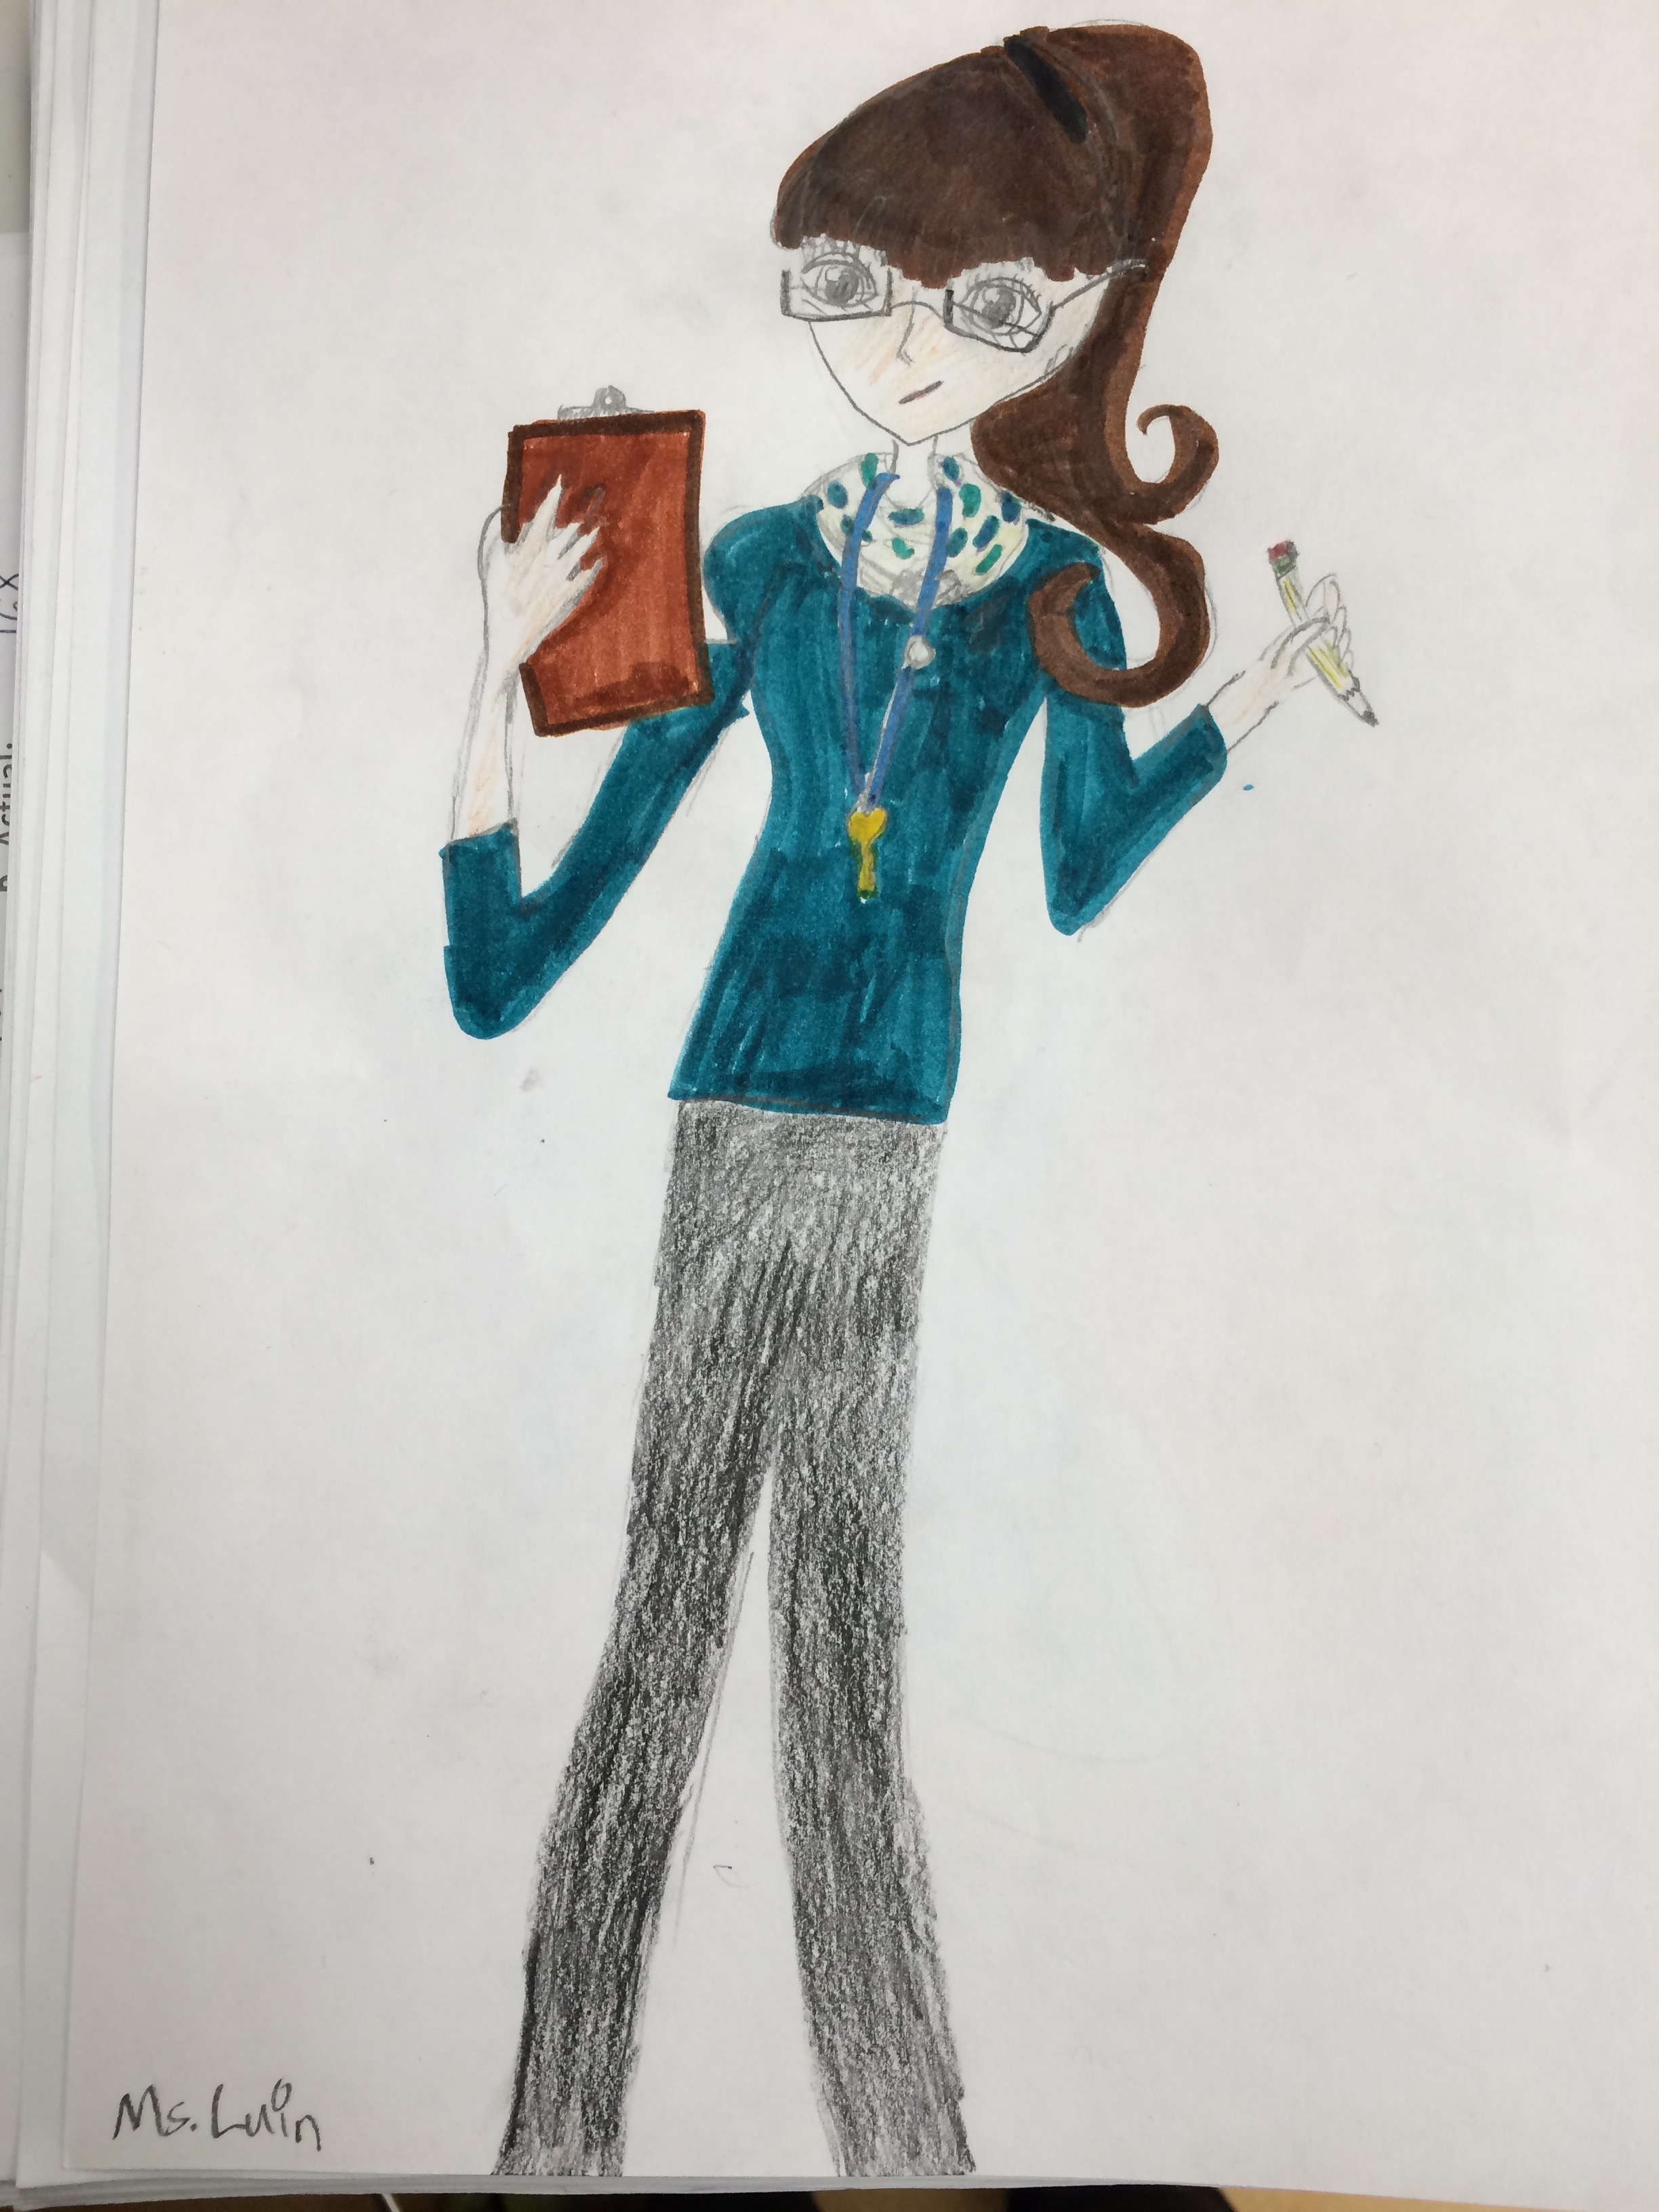 How my students view me.